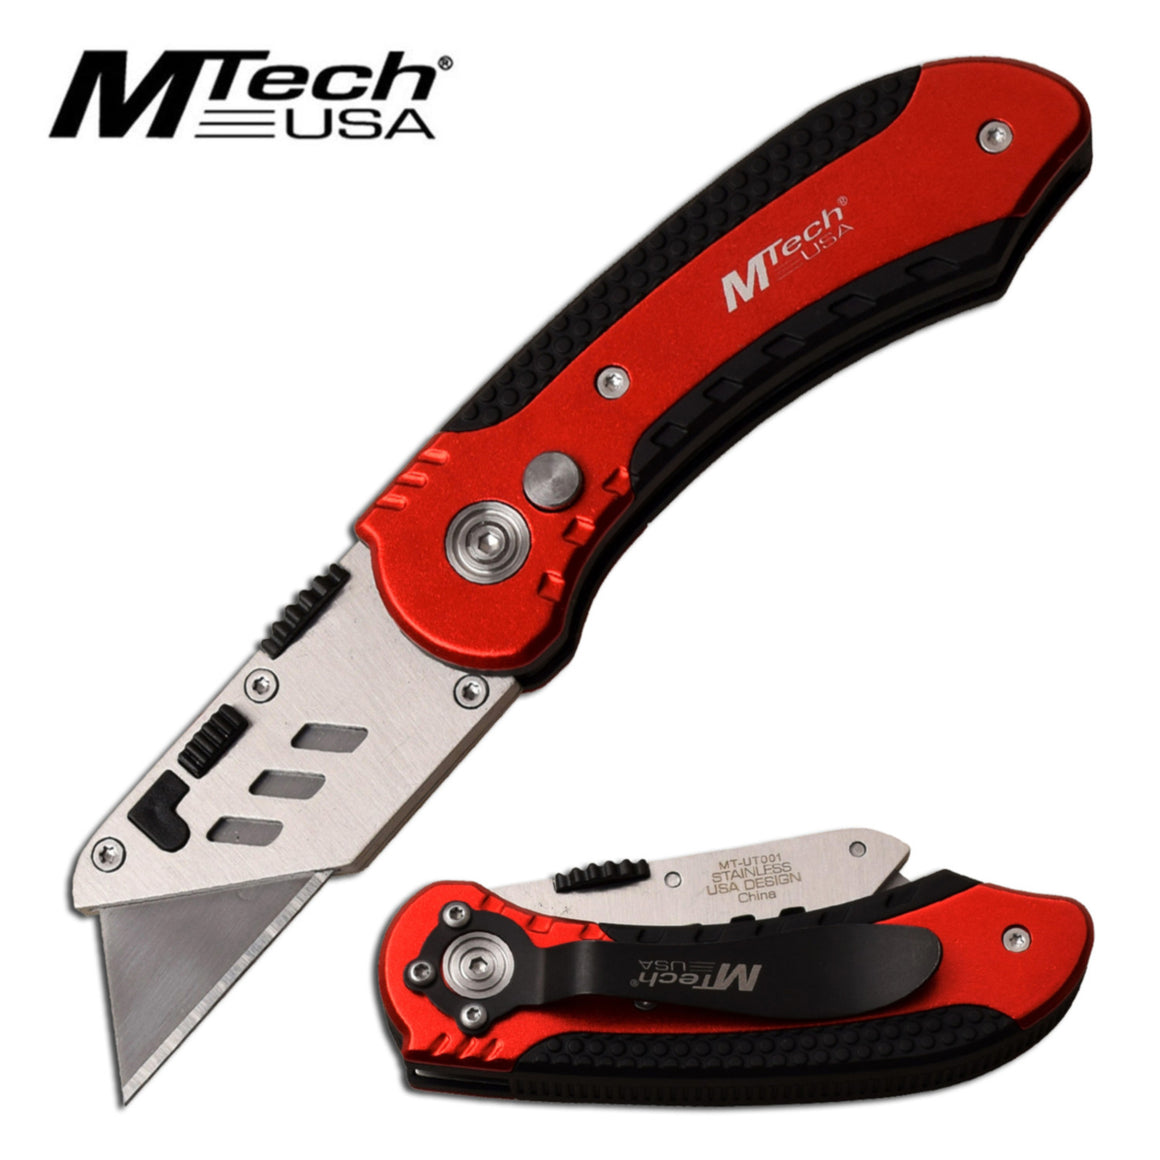 MTech USA MT-UT001RD Manual Folding Knife